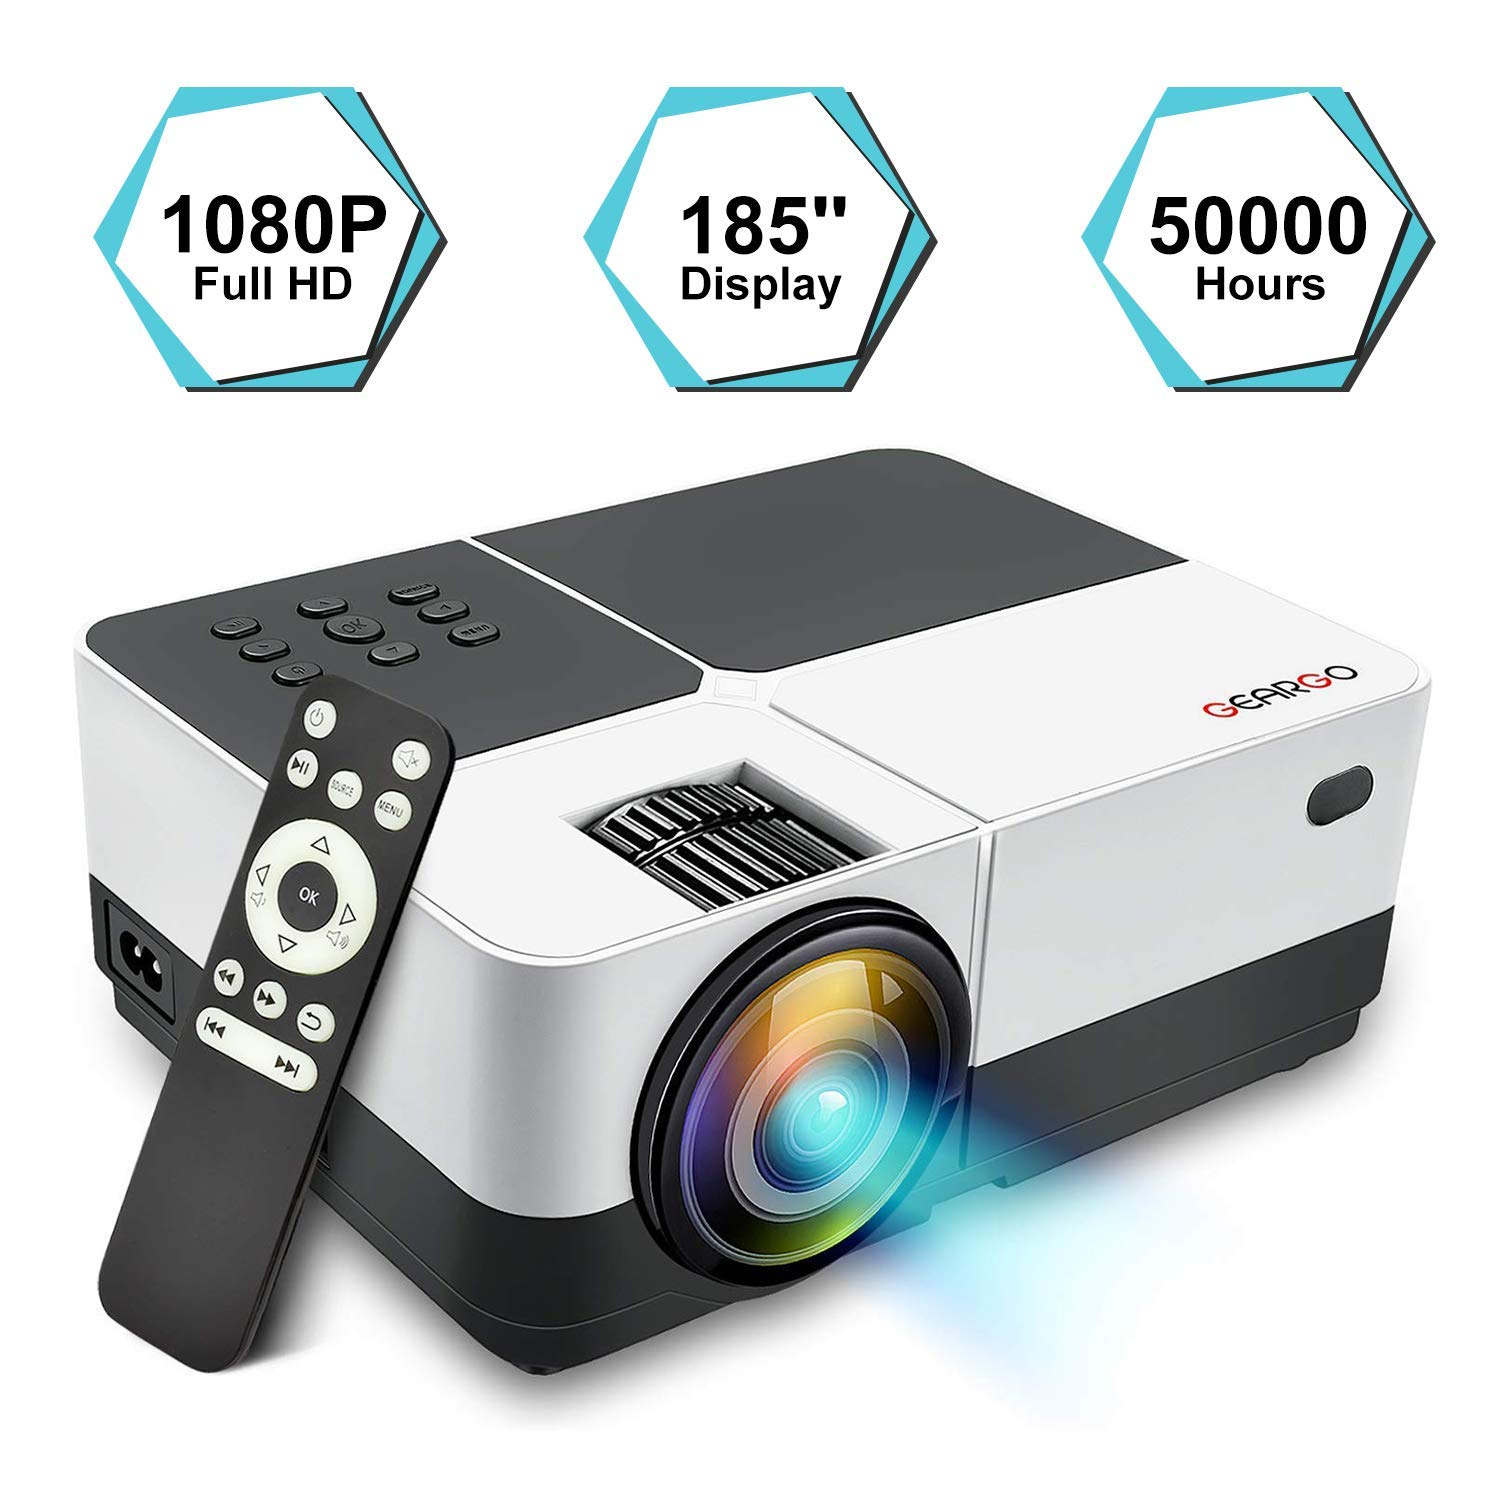 "Projector, GEARGO Video Projector Supports Full HD 1080P 185"" Display and 2800 Lumen"